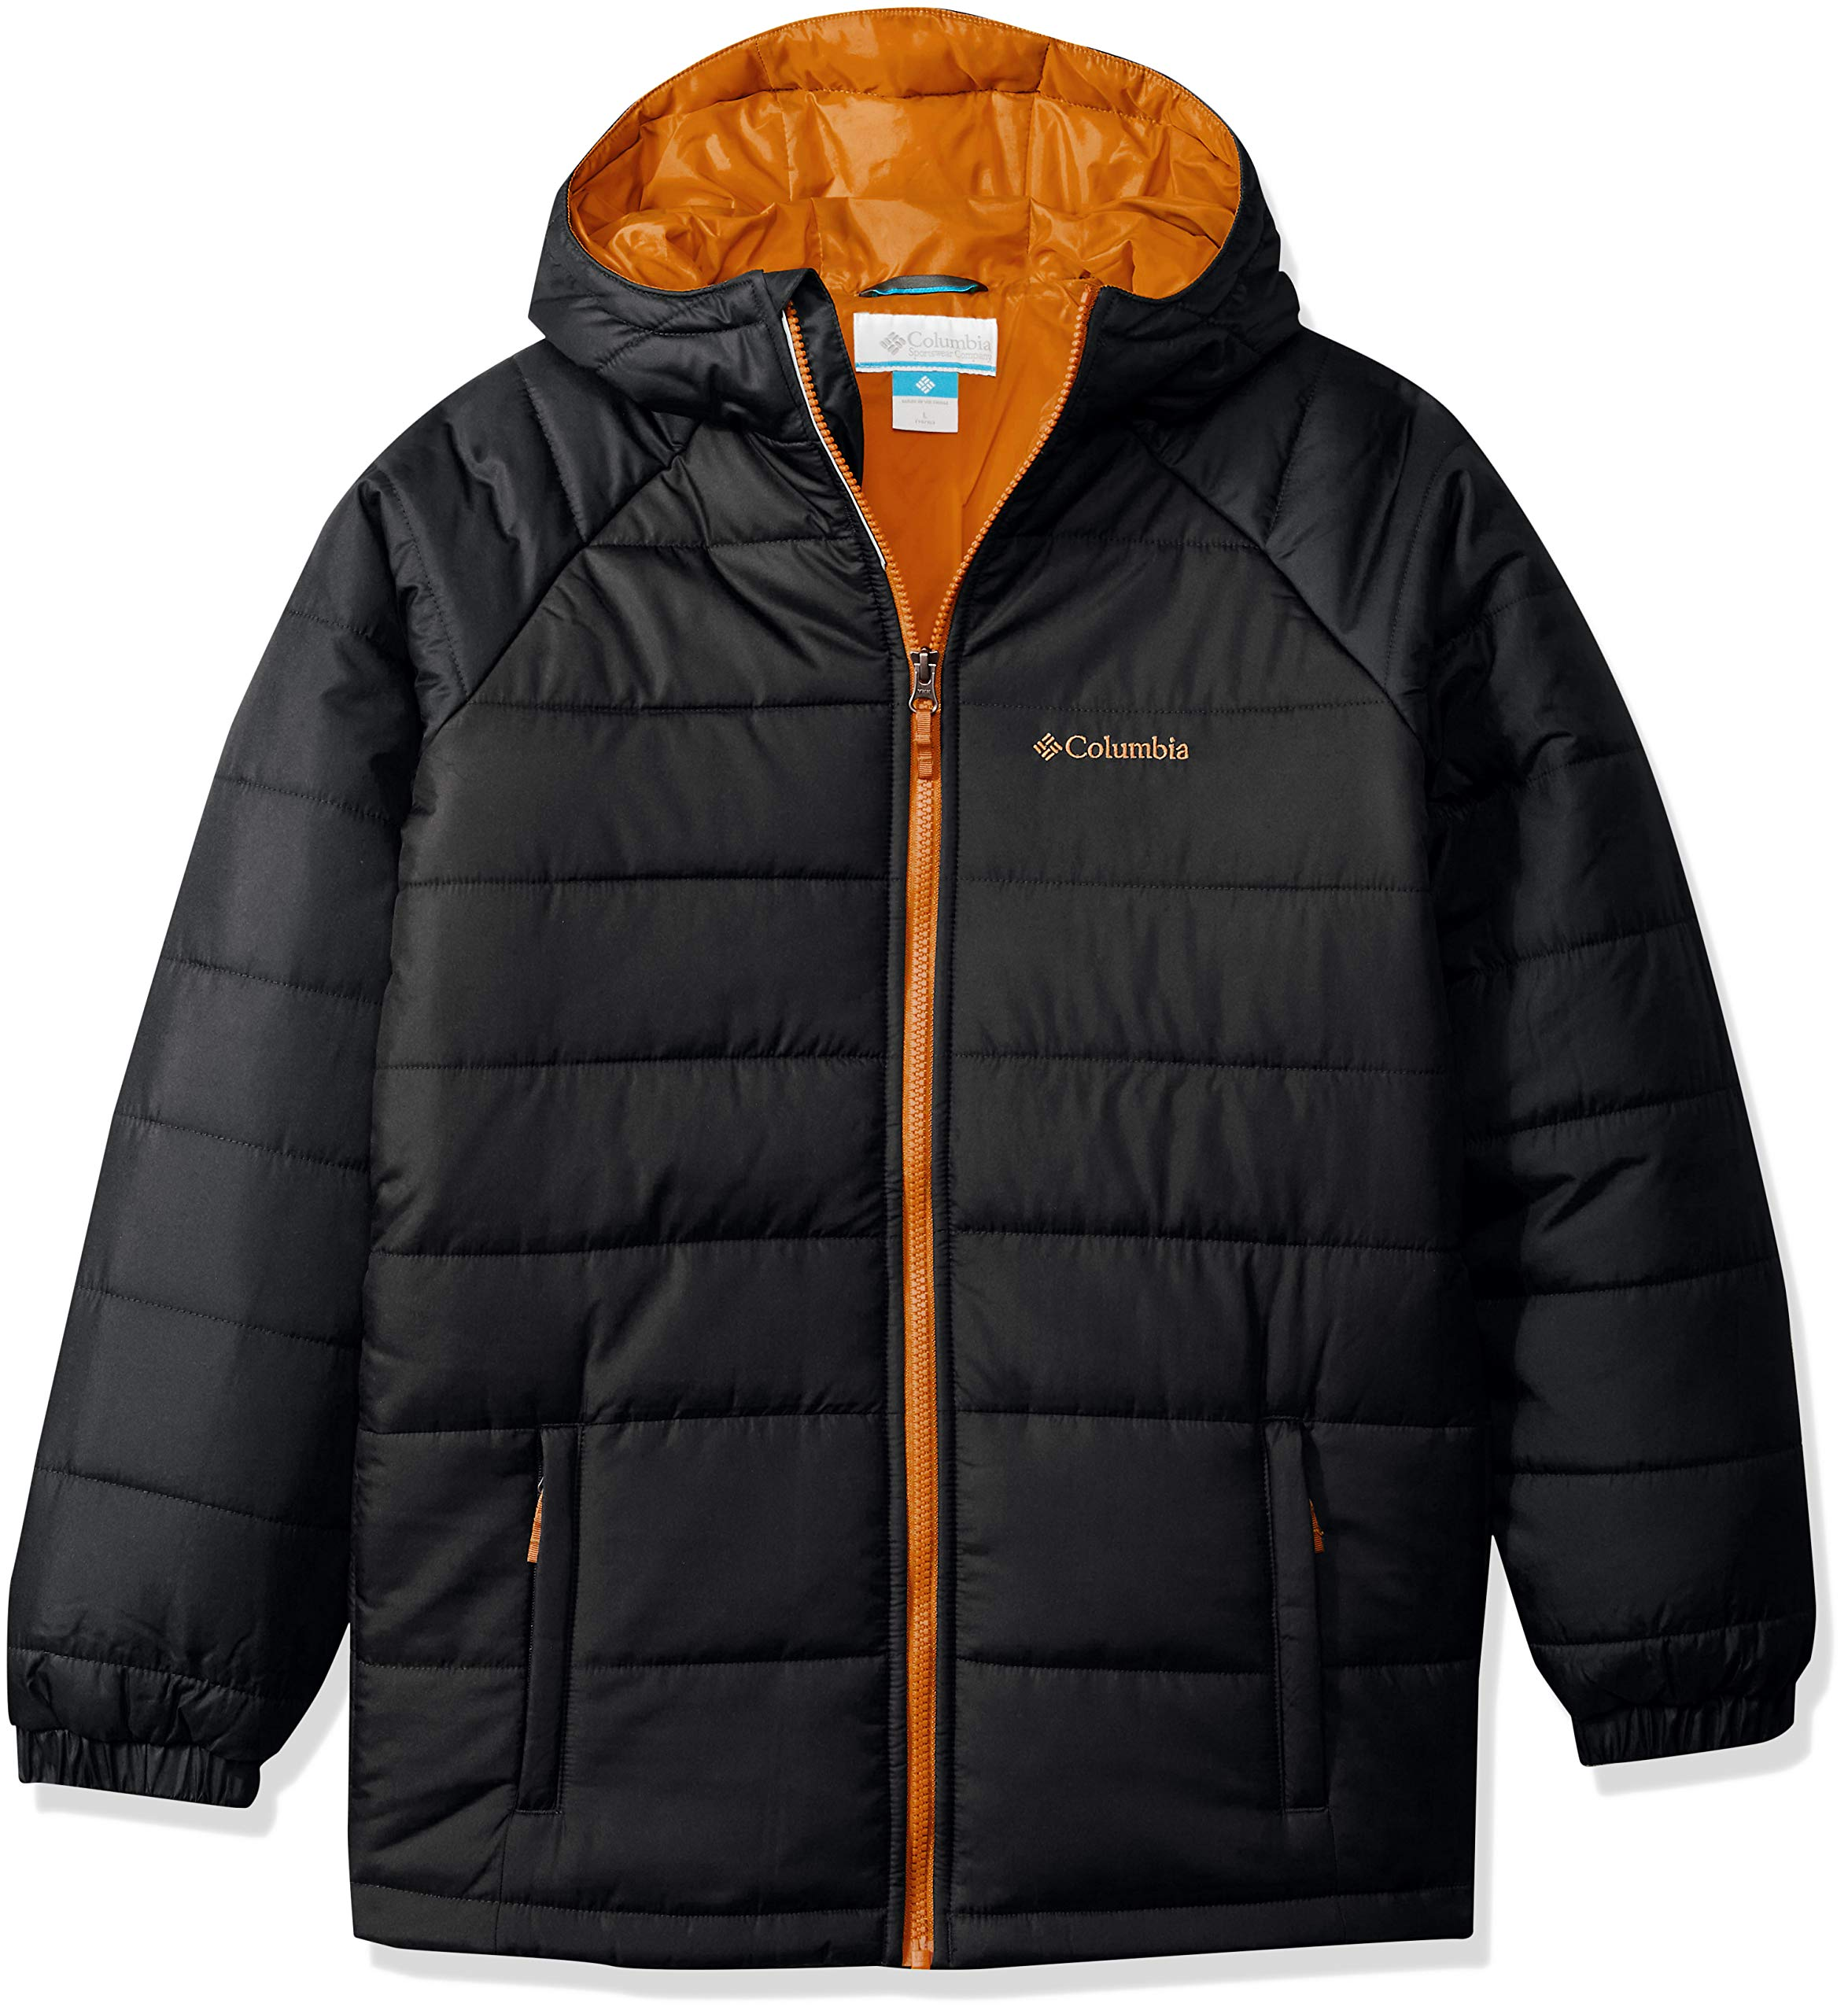 Columbia Boys' Big Tree Time Puffer Jacket, Black/Grill, Small